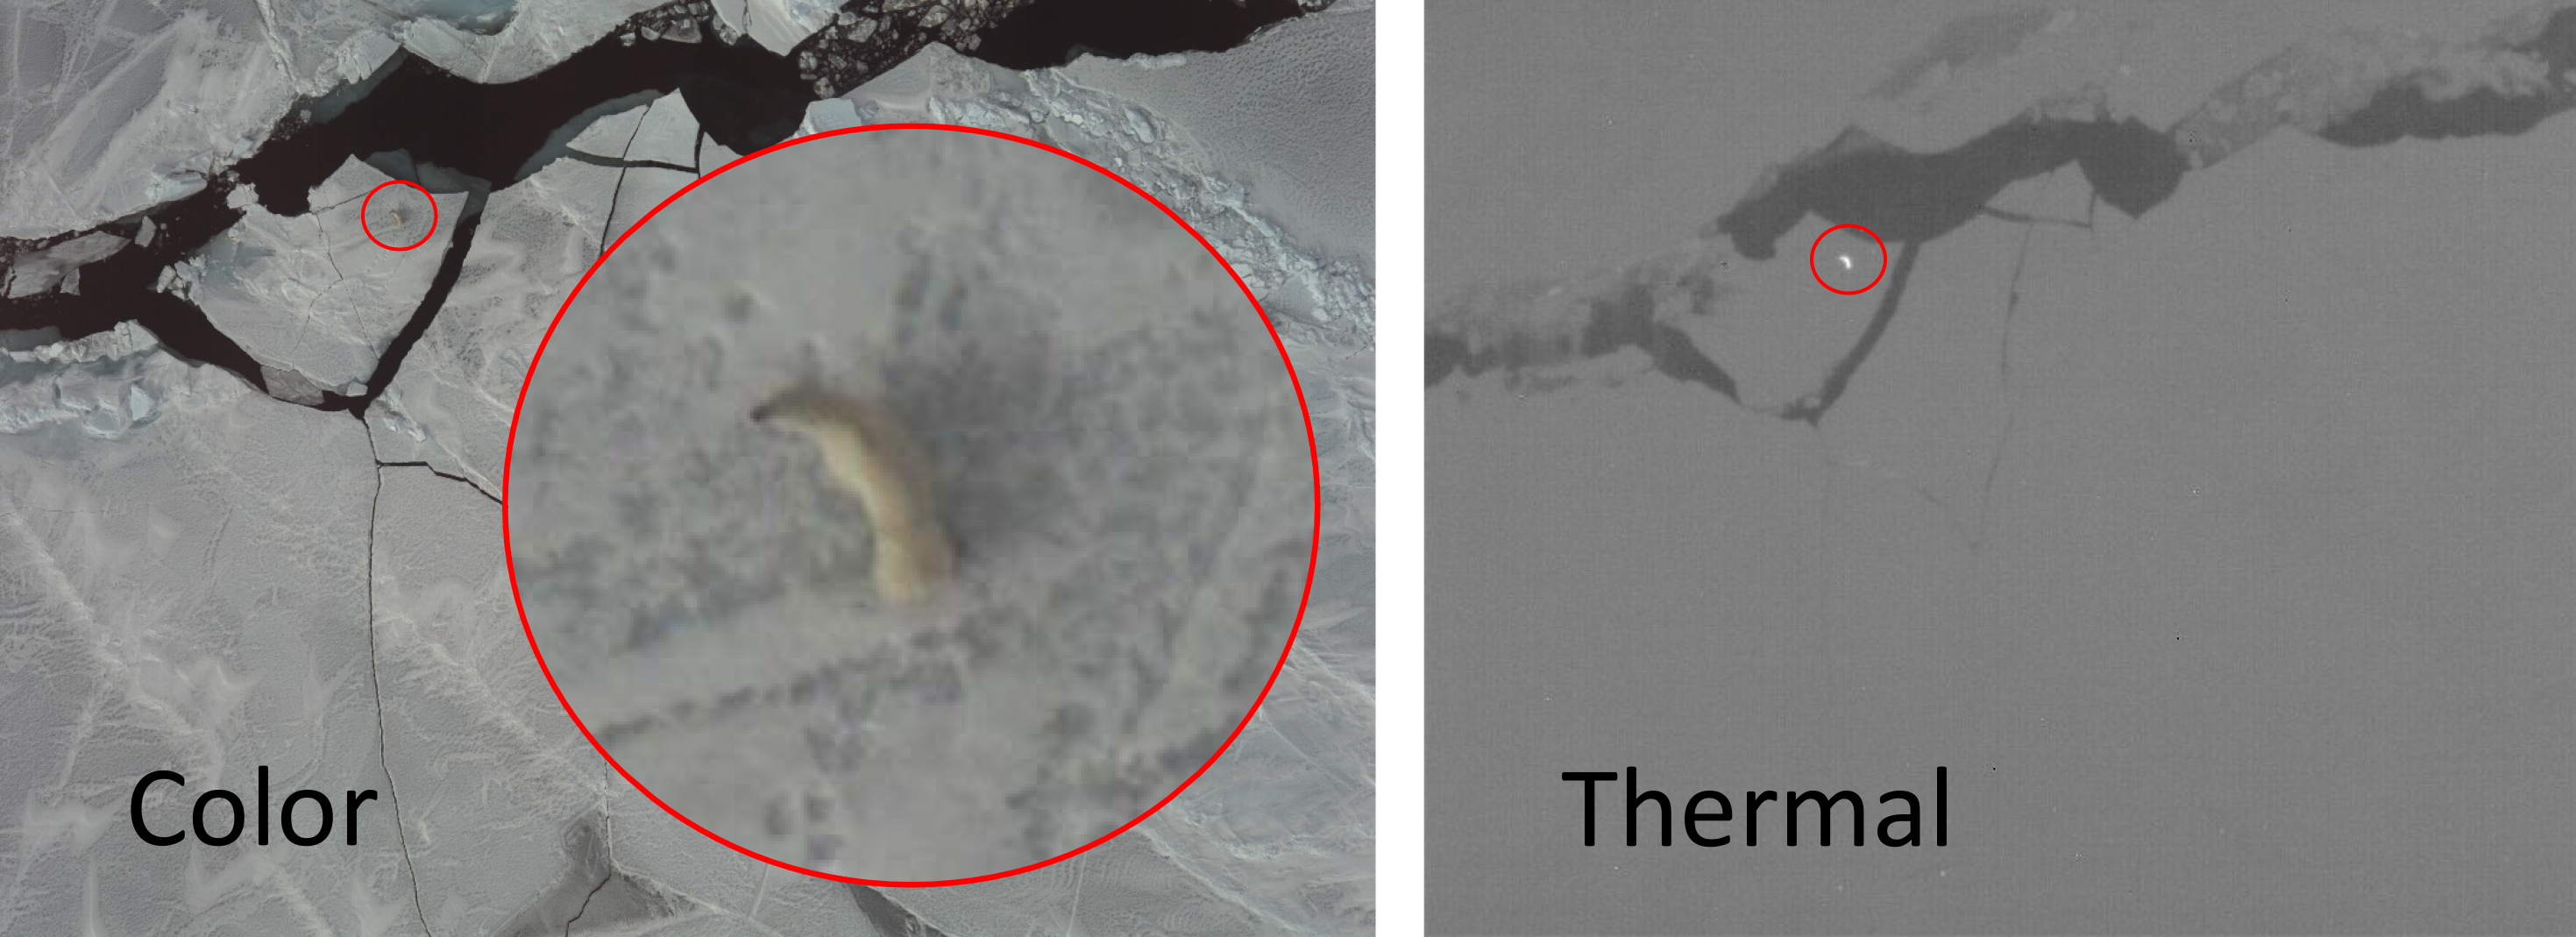 Aerial photograph and infrared imagery of a polar bear on ice floes shown side by side.